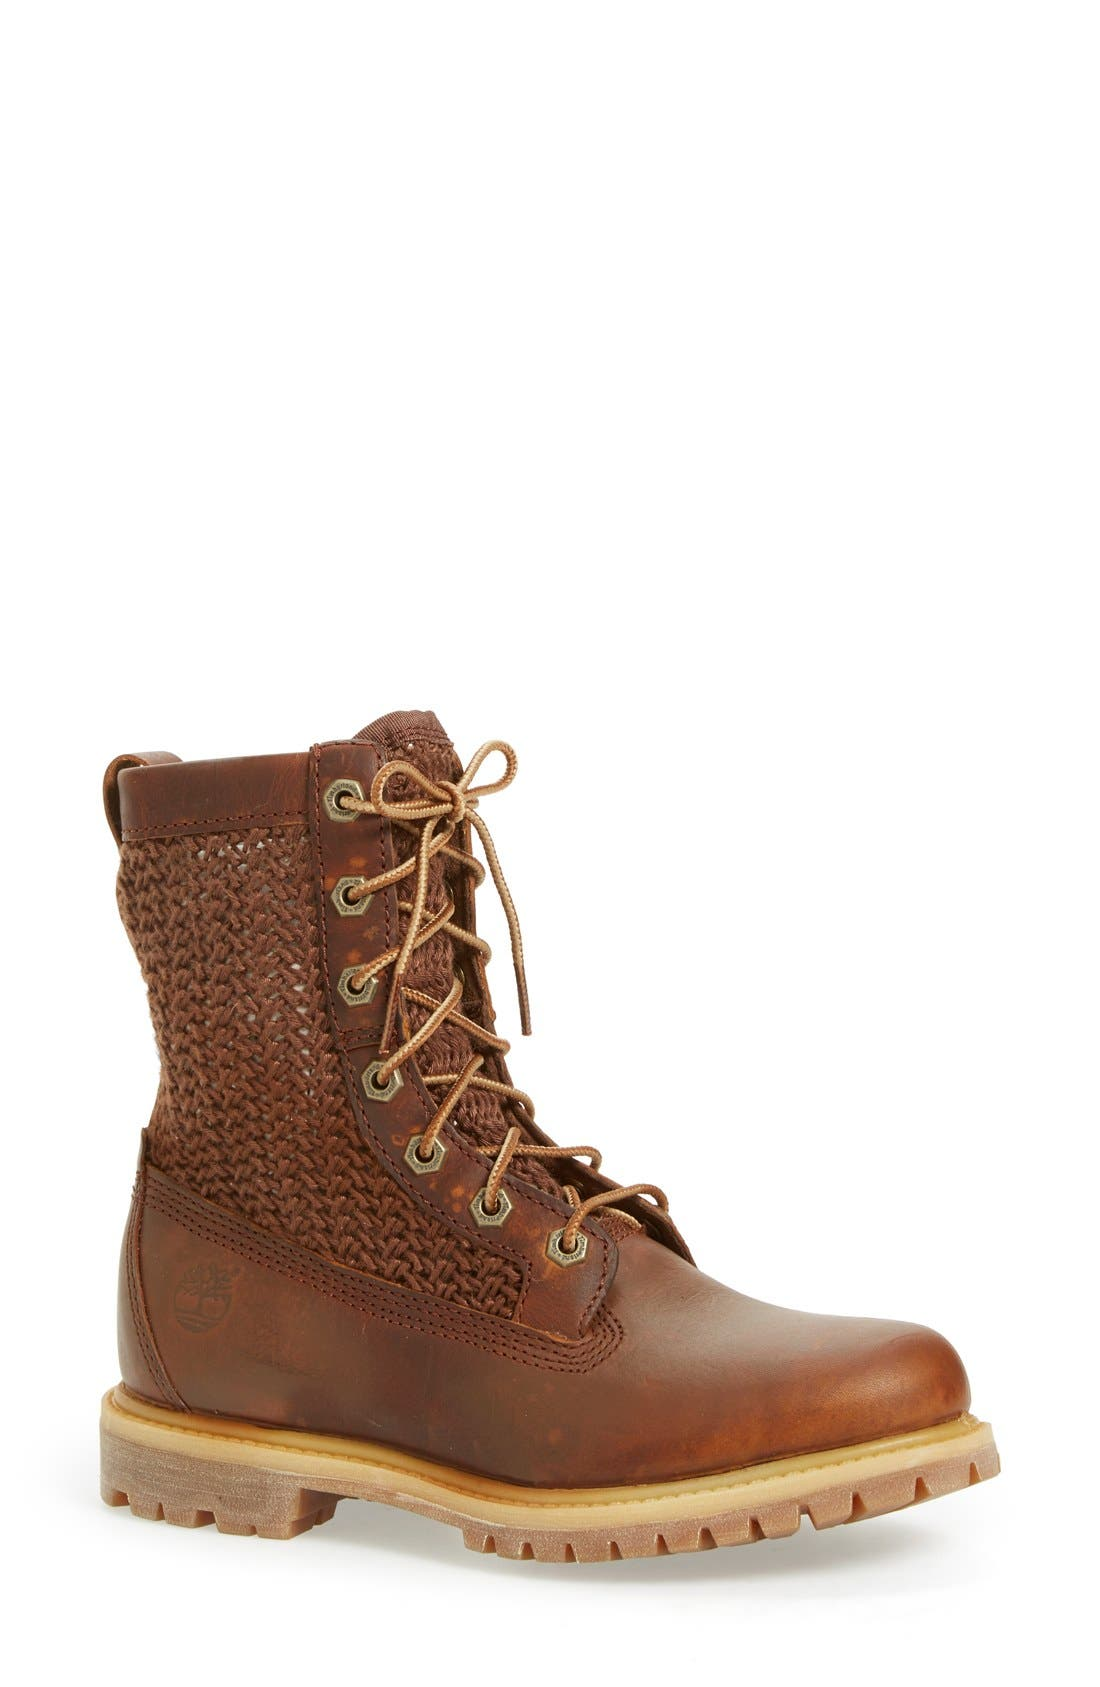 Main Image - Timberland 'Authentic' Lace-Up Boot (Women)